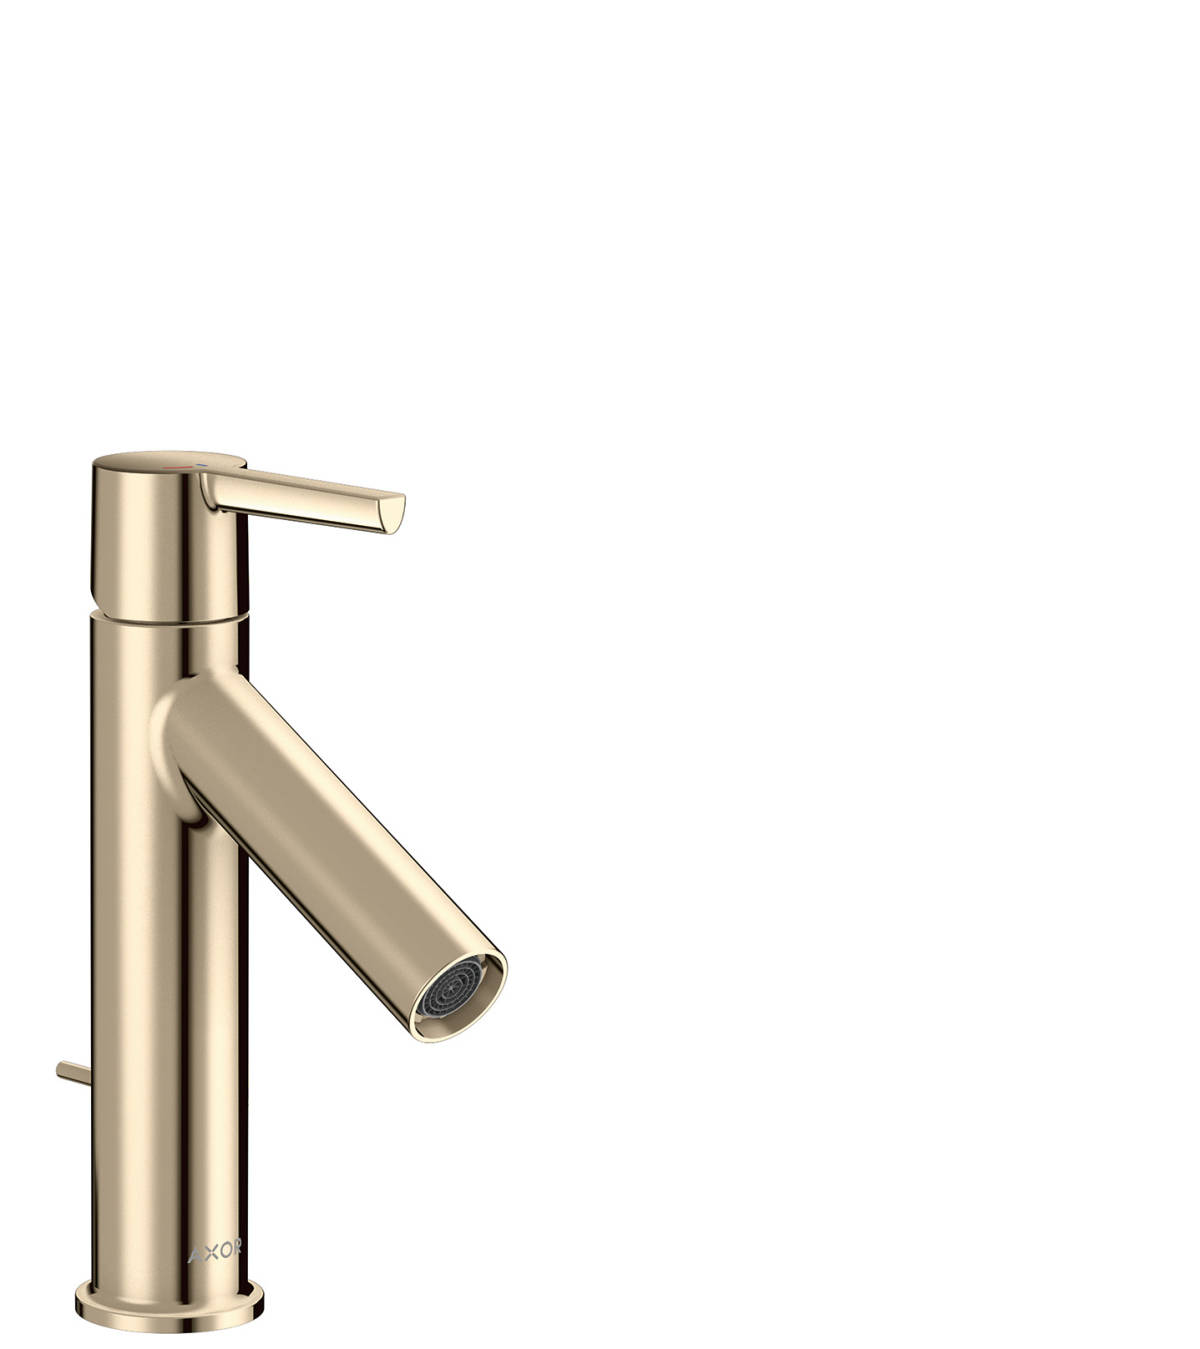 Single lever basin mixer 100 CoolStart with lever handle and pop-up waste set, Polished Nickel, 10007830